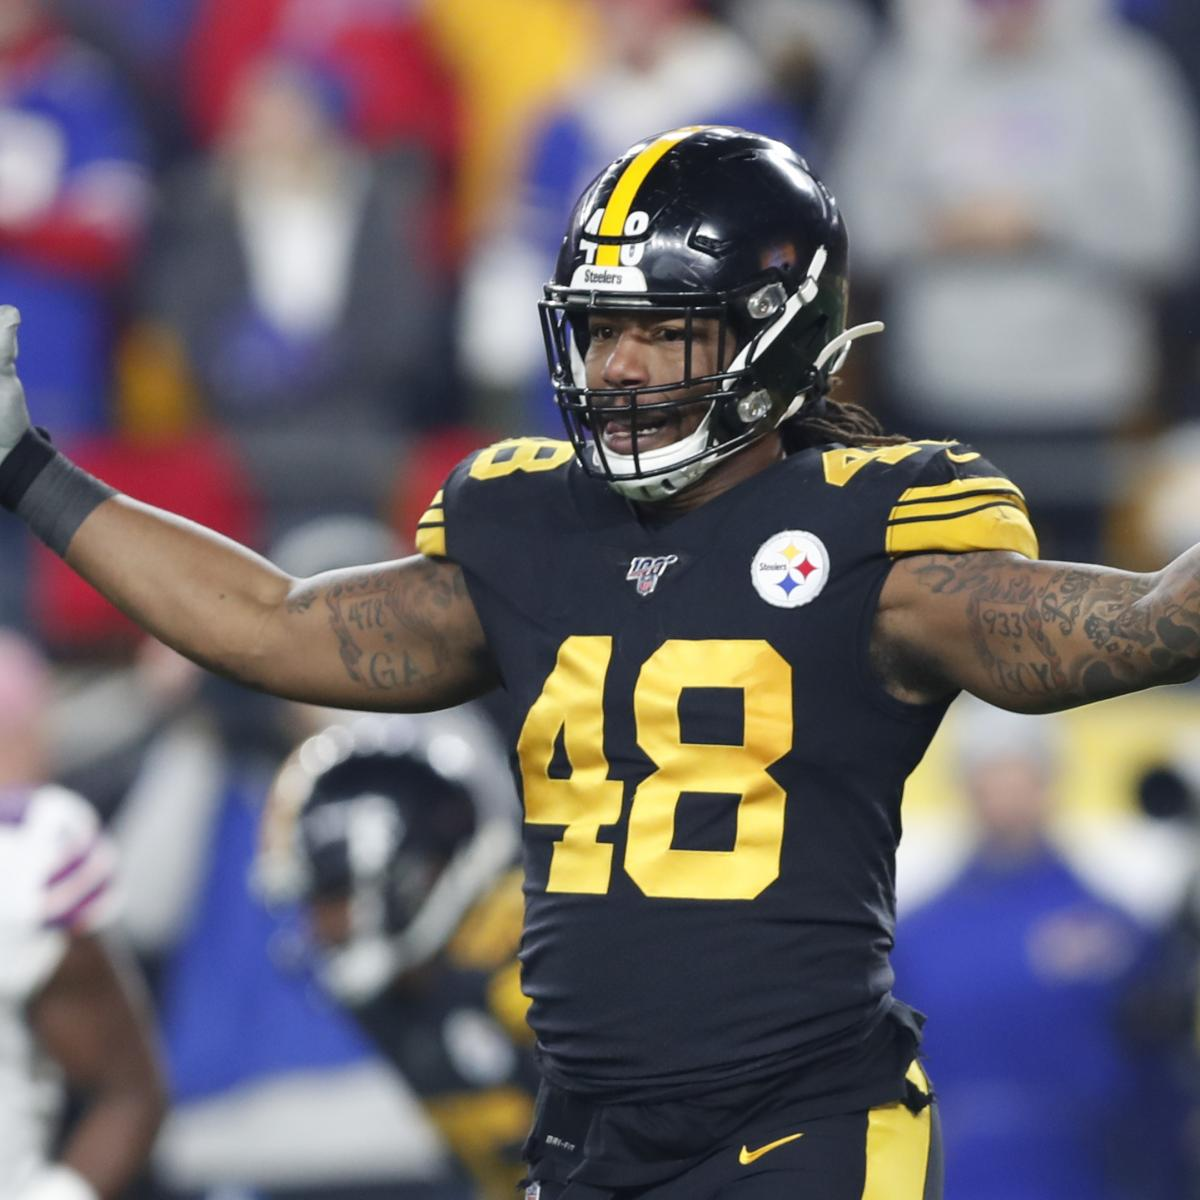 Steelers Rumors: Bud Dupree Receives Franchise Tag Ahead of NFL Free Agency